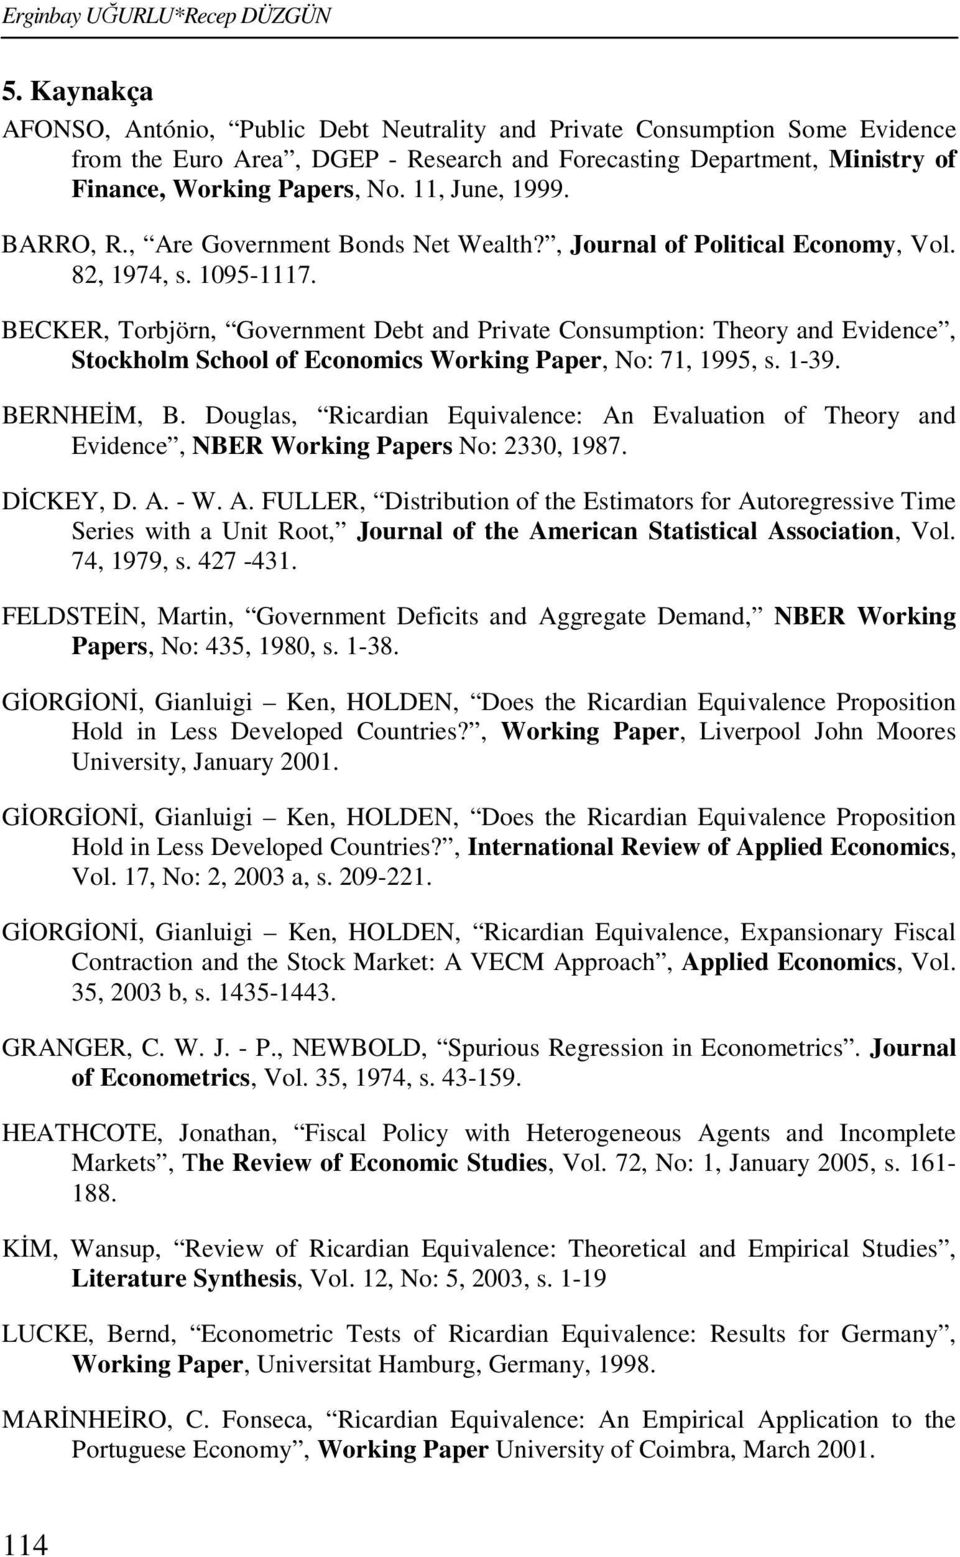 BARRO, R., Are Governmen Bonds Ne Wealh?, Journal of Poliical Economy, Vol. 8, 97, s. 095-7.